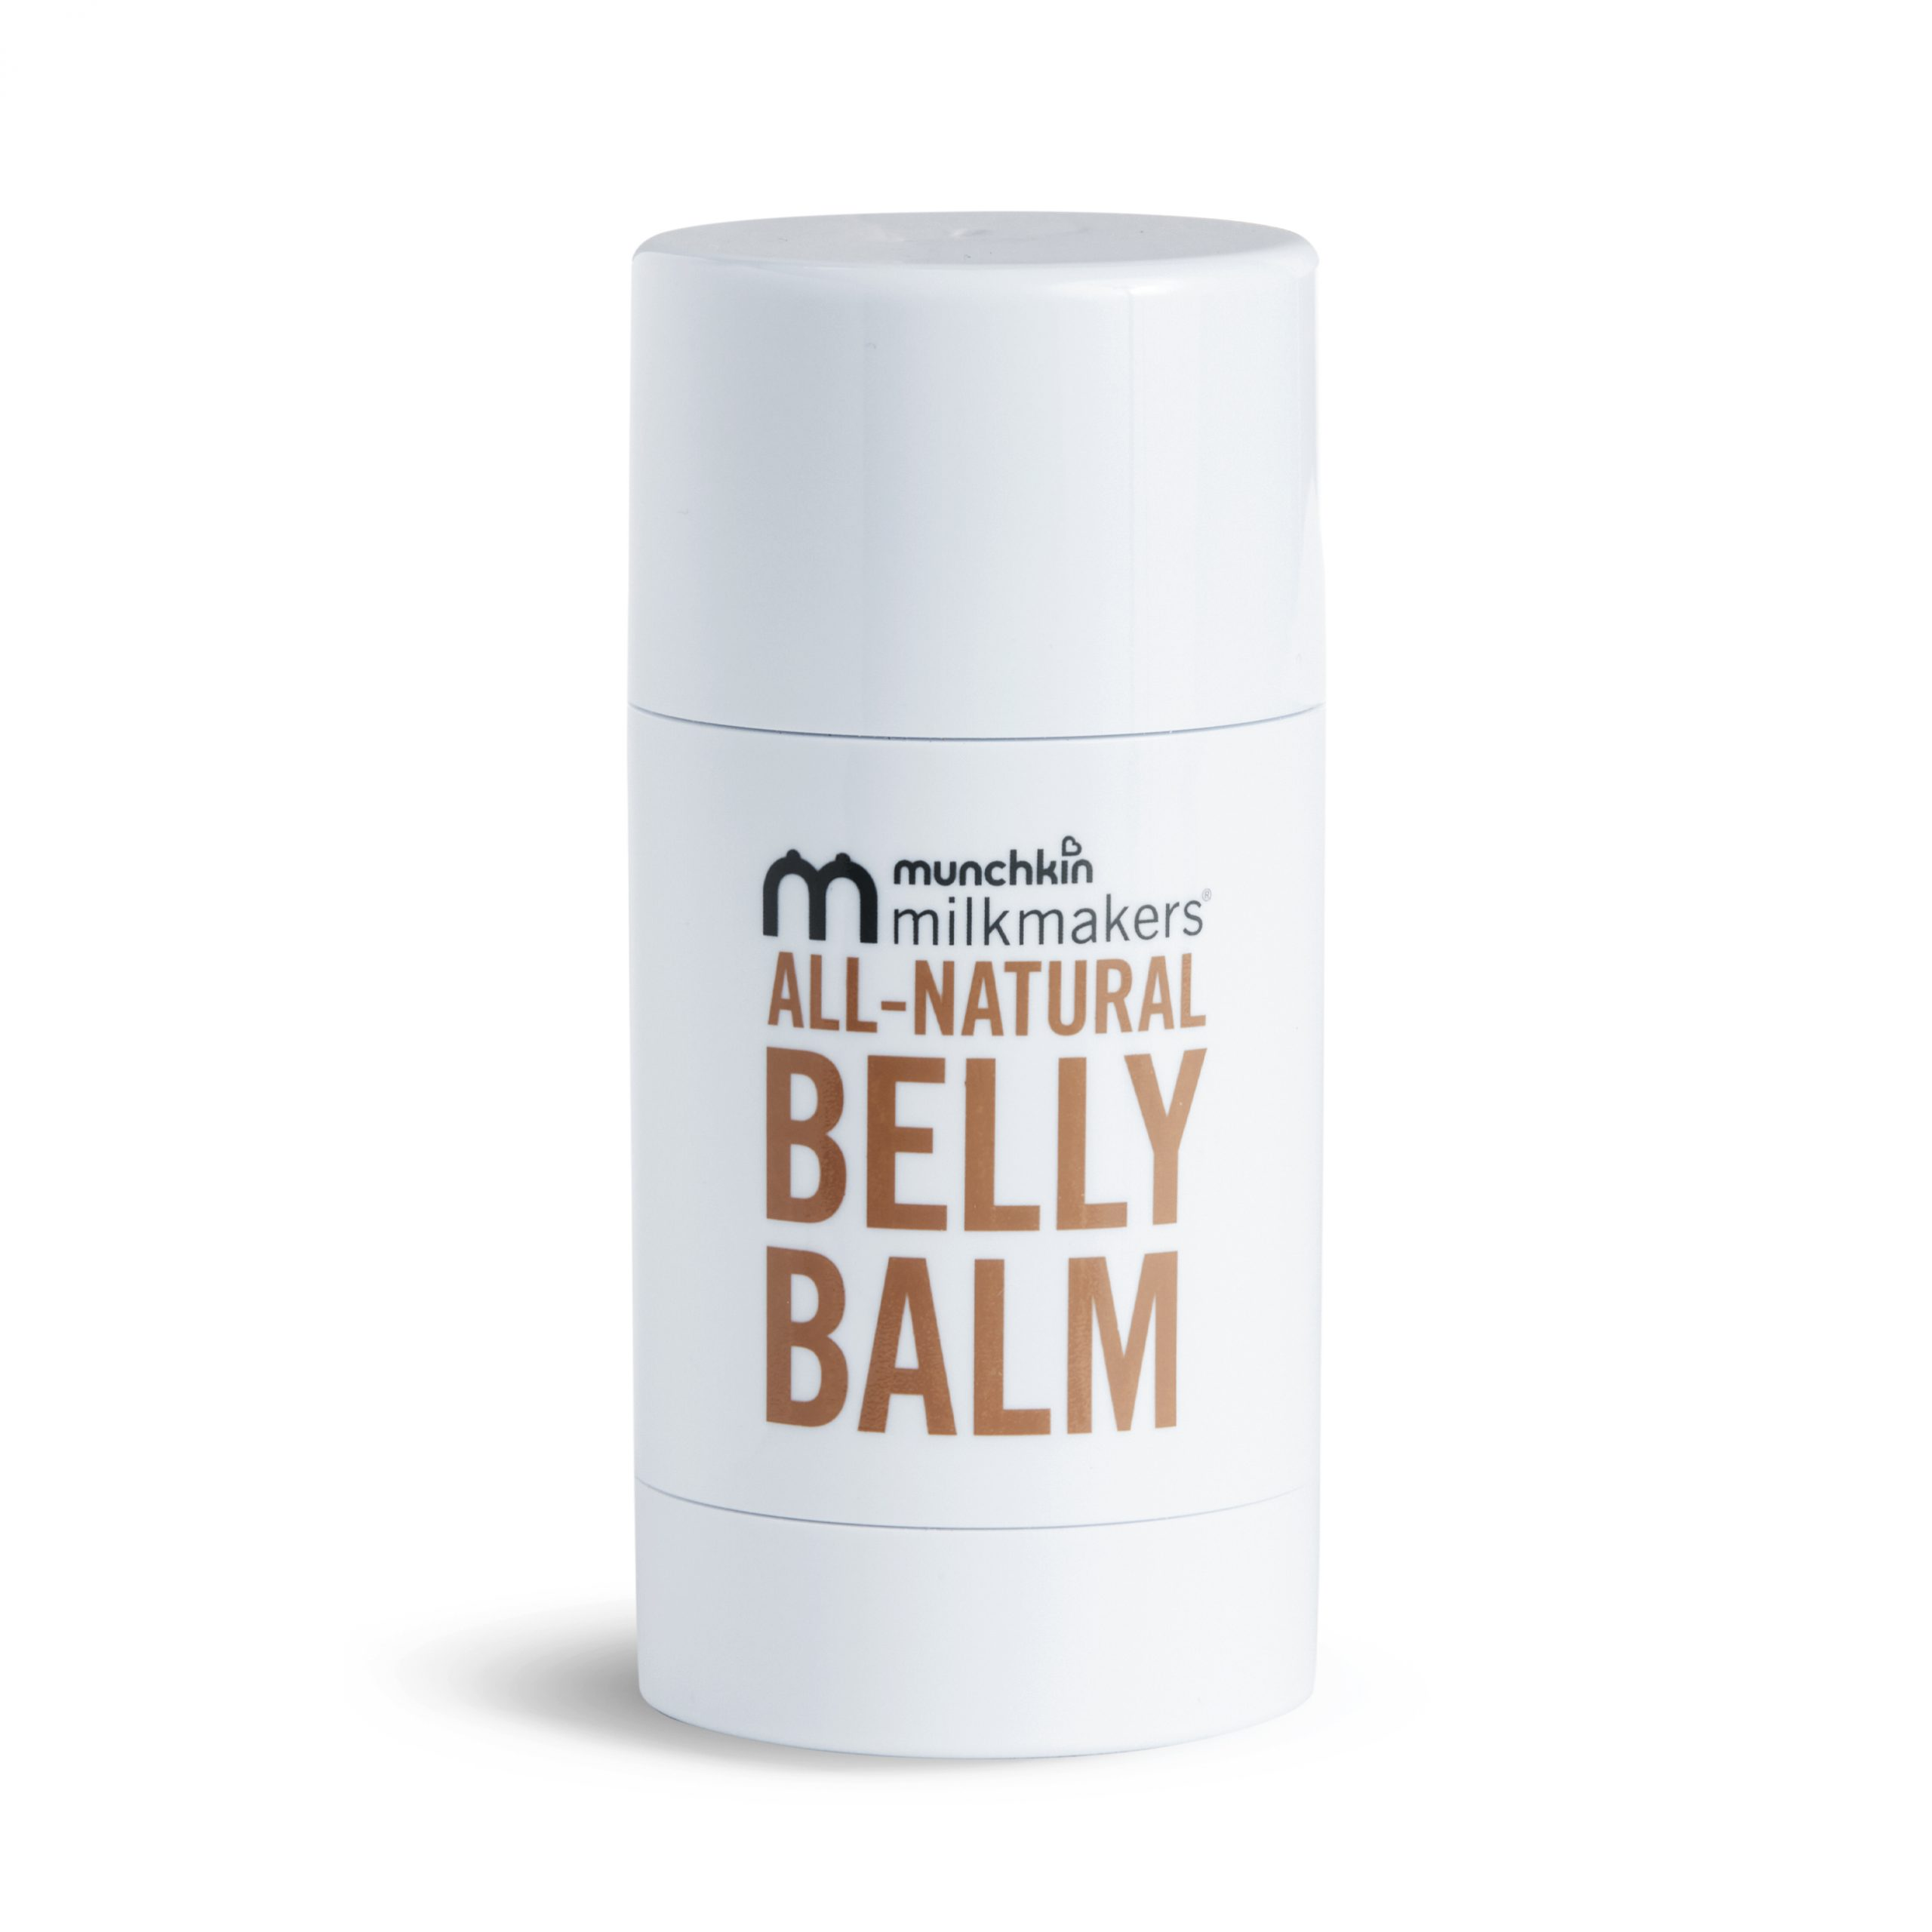 Milkmakers All-Natural Belly Balm